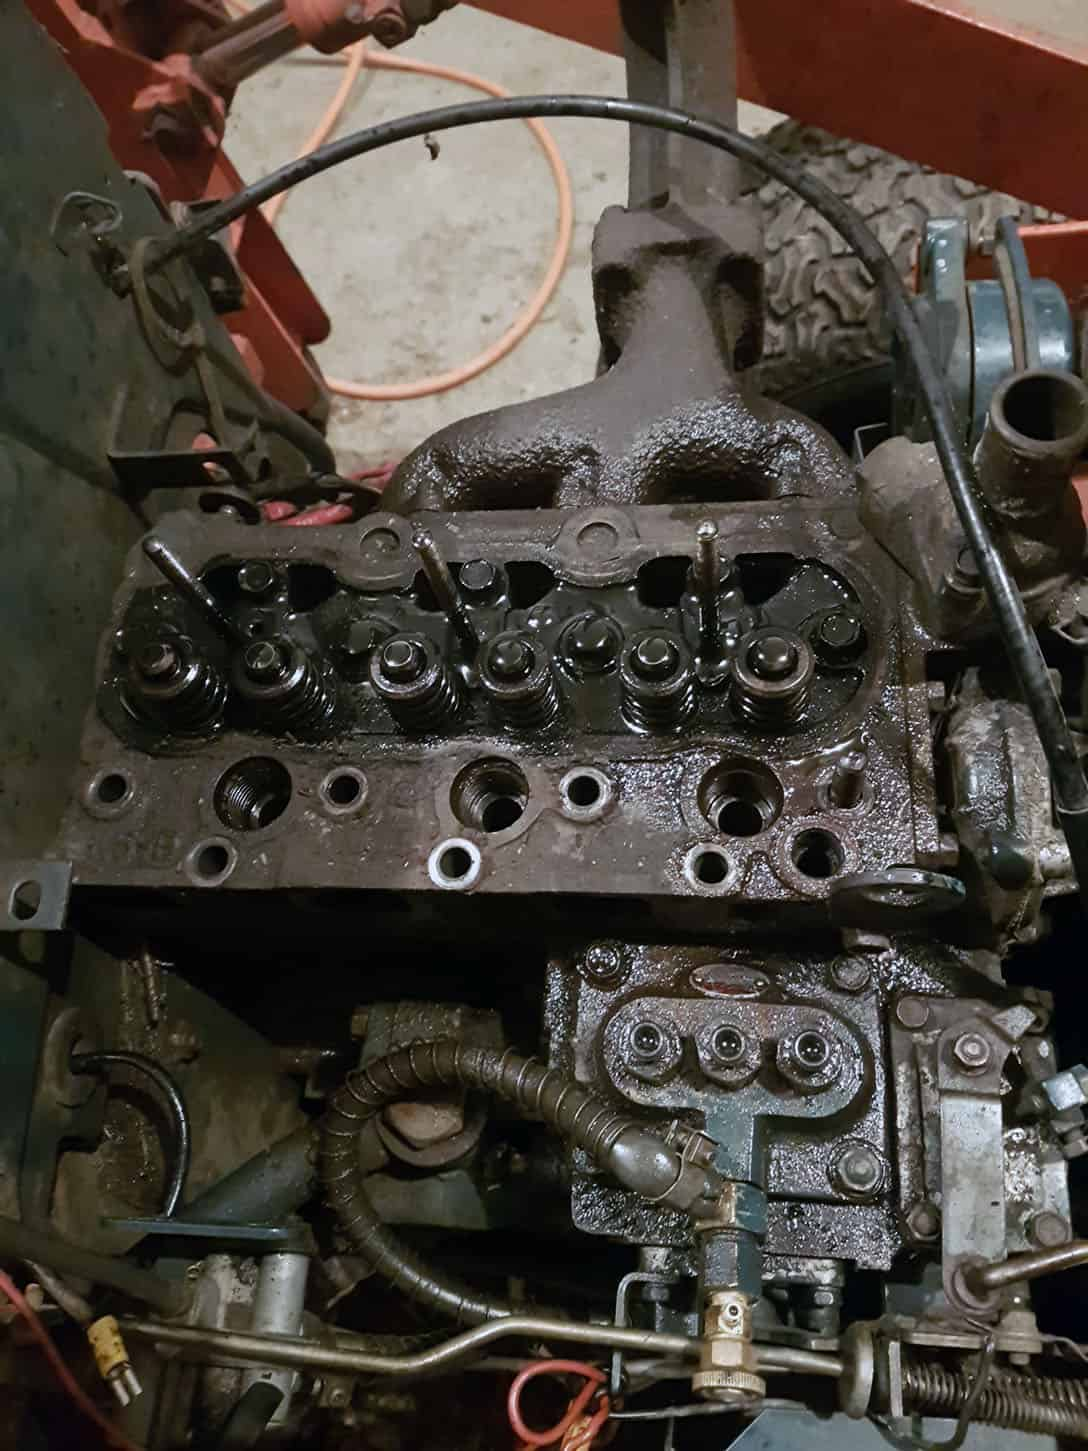 Kubota B20 Valve Cover and Rocker Arms Removed